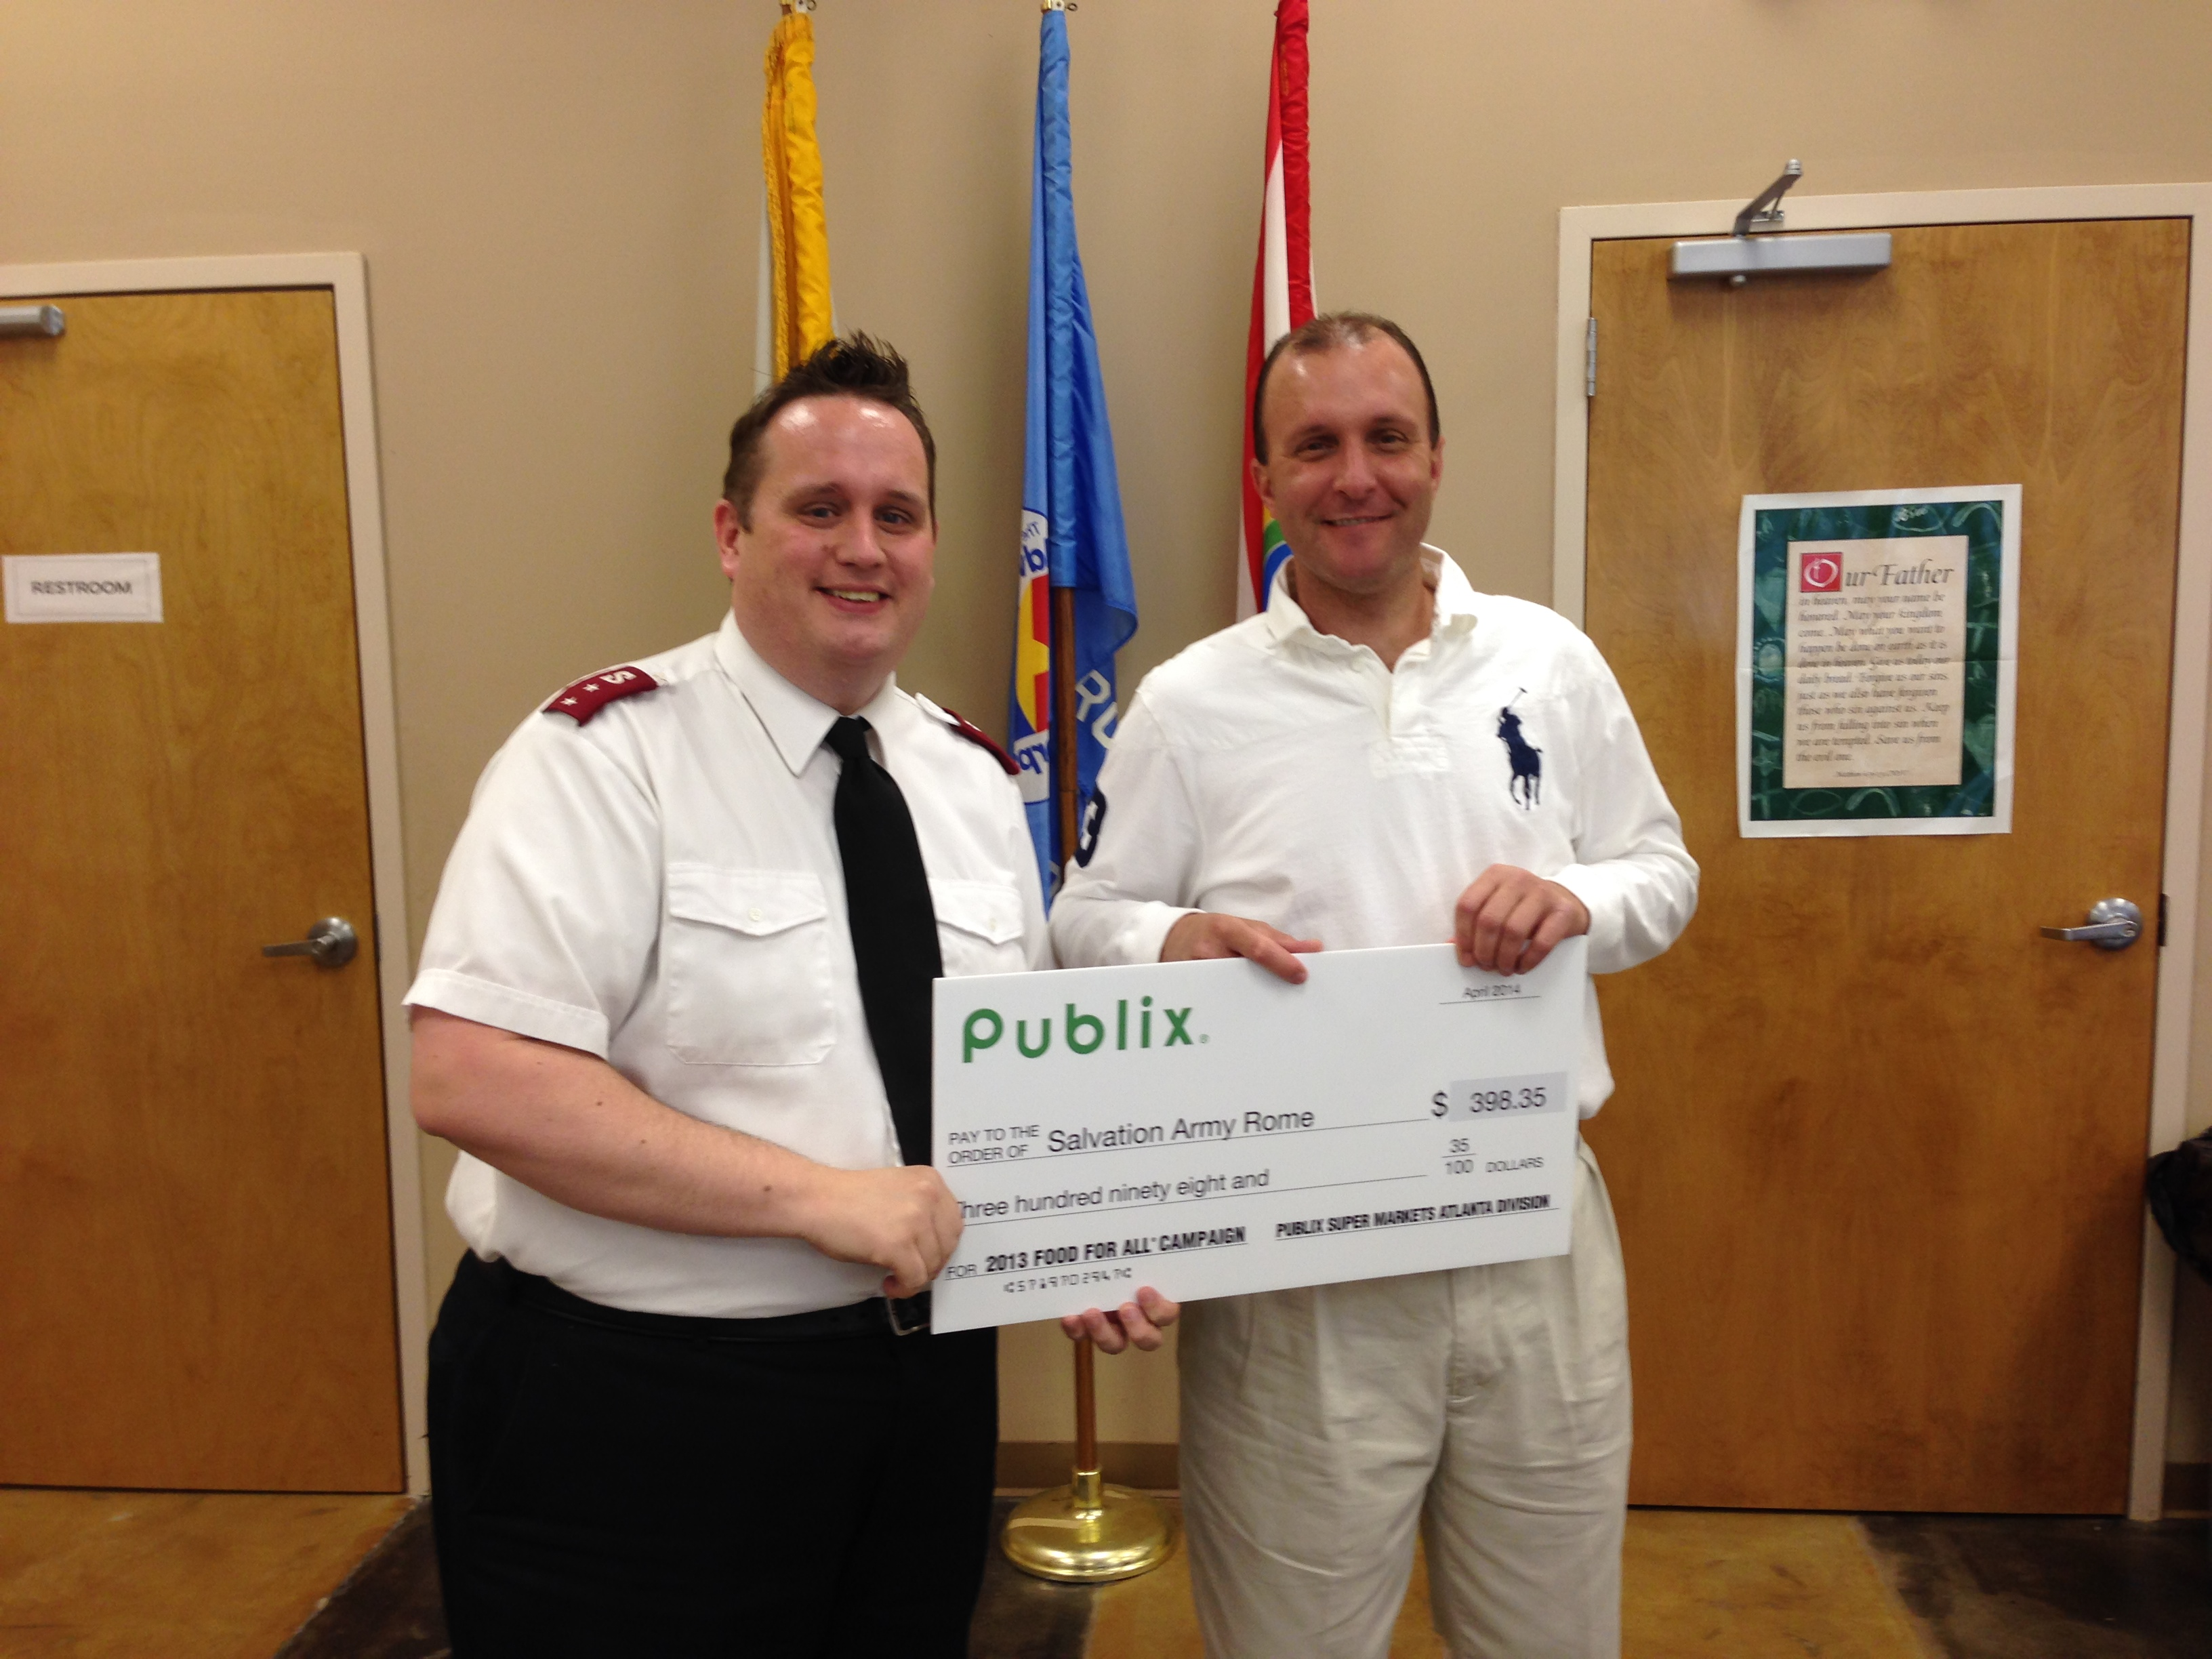 Good shepherd funeral home rome ga - Donation From The 2014 Food For All Campaign From Publix Pictured Captain Mcclure